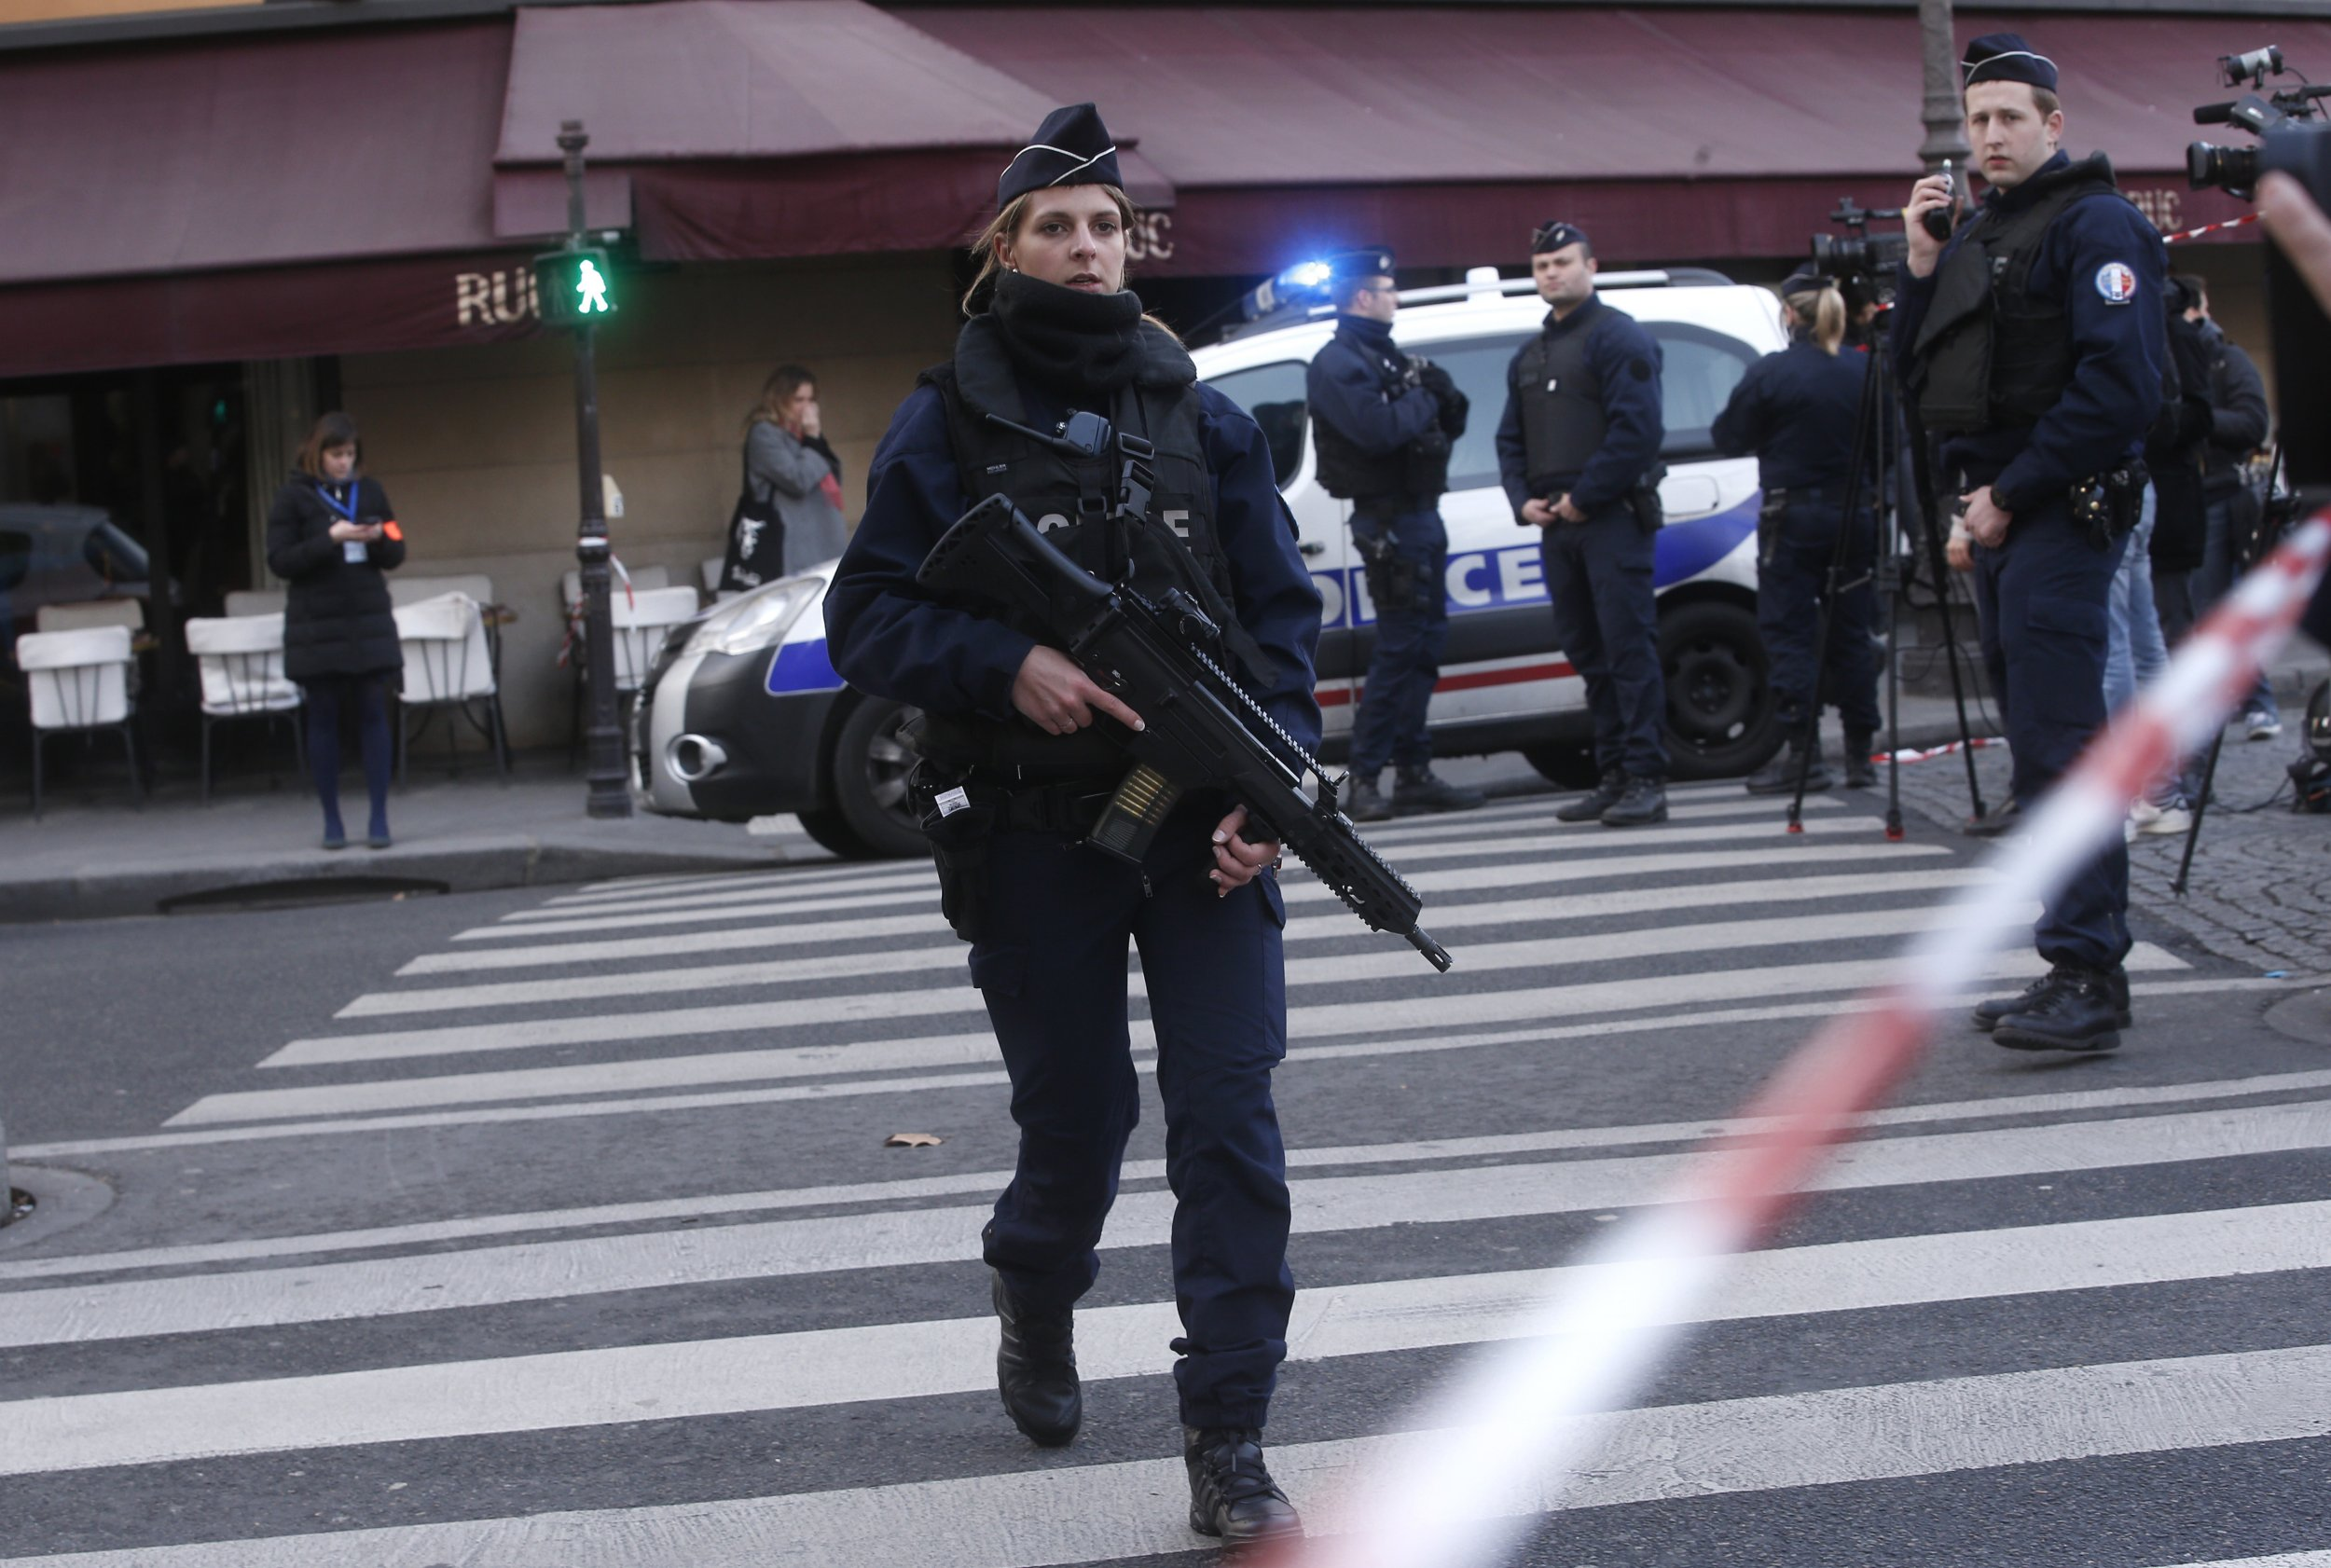 Police officers take position outside the Louvre museum in Paris,Friday, Feb. 3, 2017. Paris police say a soldier has opened fire outside the Louvre Museum after he was attacked by someone, and the area is being evacuated. (AP Photo/Thibault Camus)